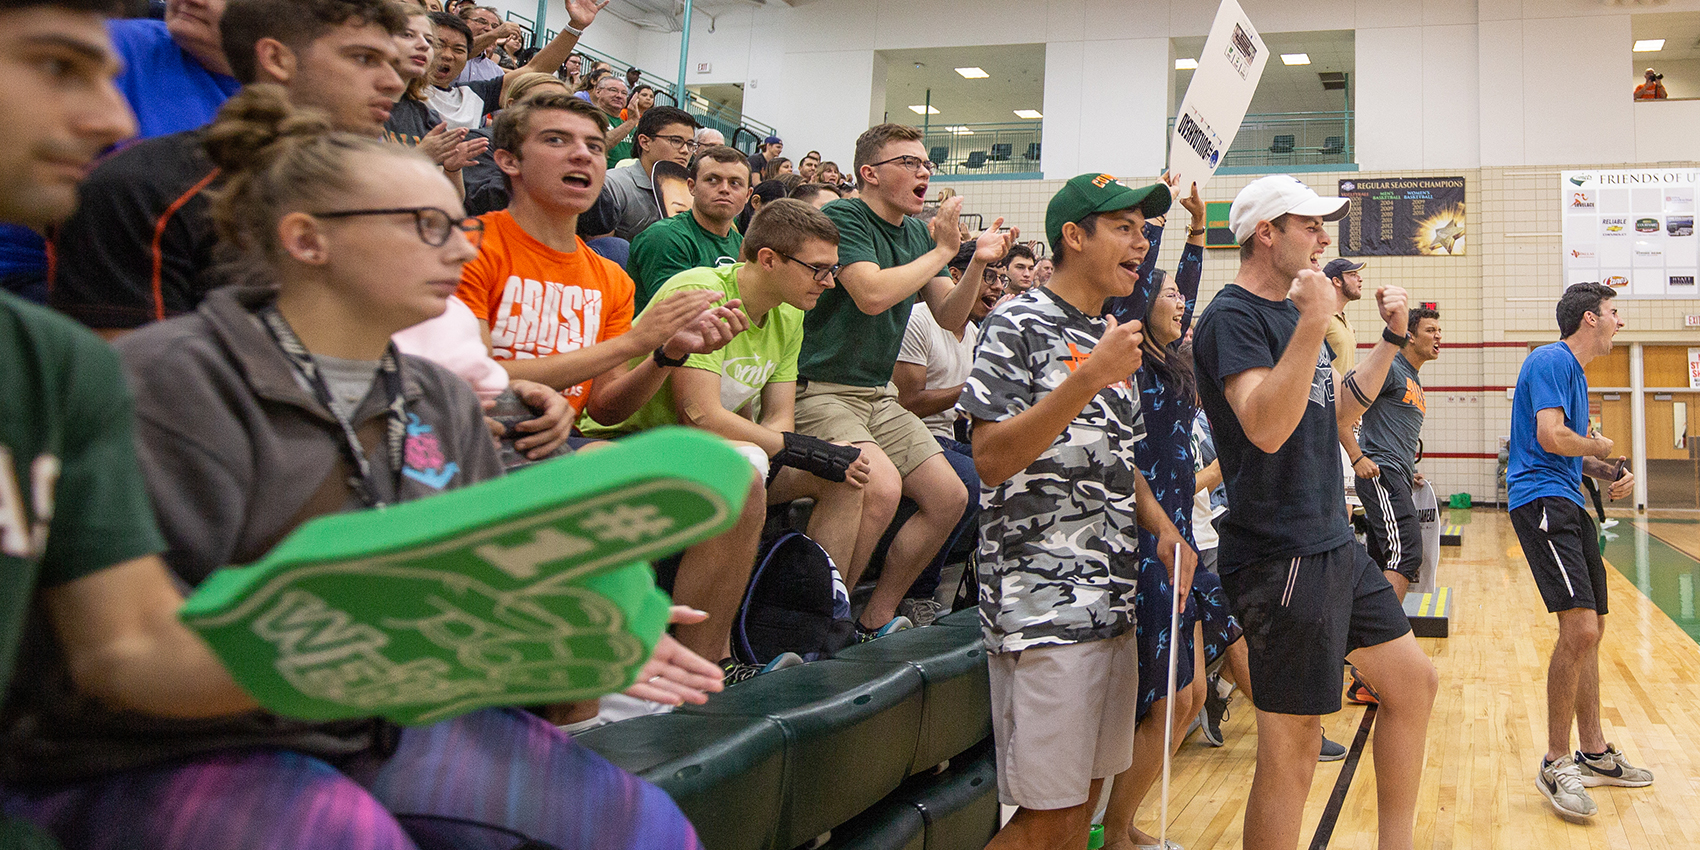 Students cheering on a team in a gymnasium